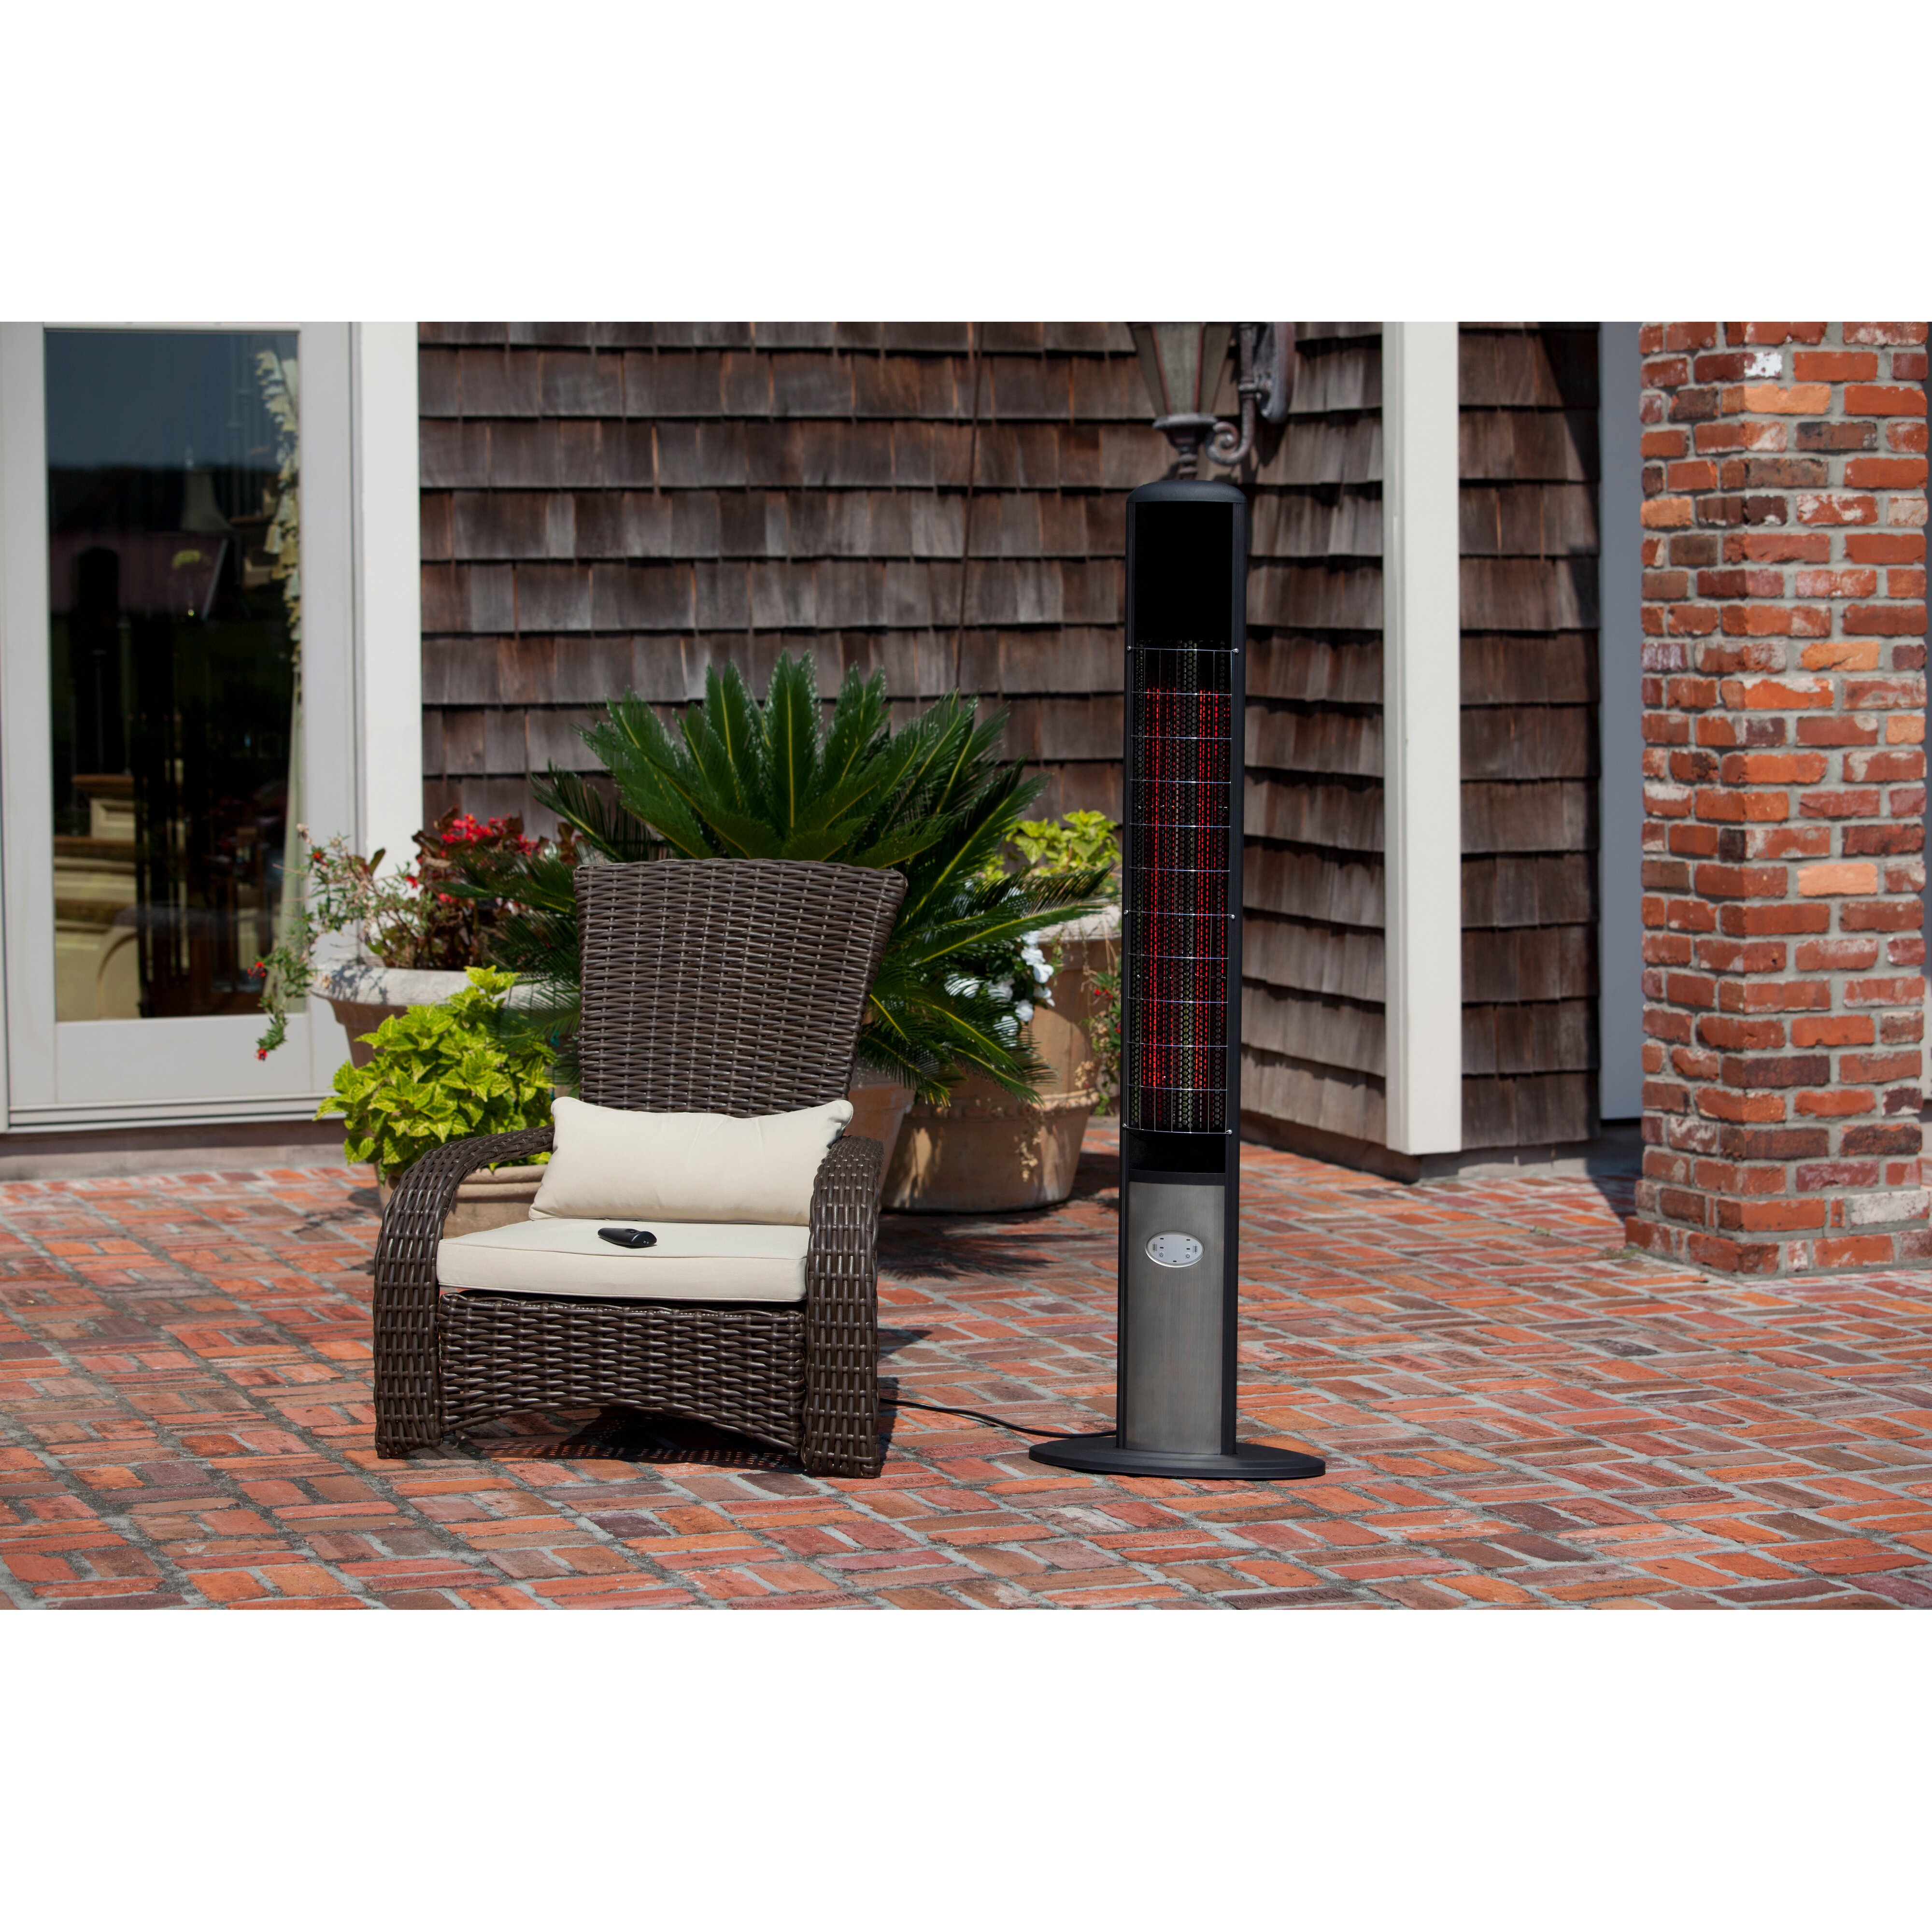 Fire Sense Aspen Tower Floor Standing Halogen 1500 Watt Electric – Fire Sense Patio Heater